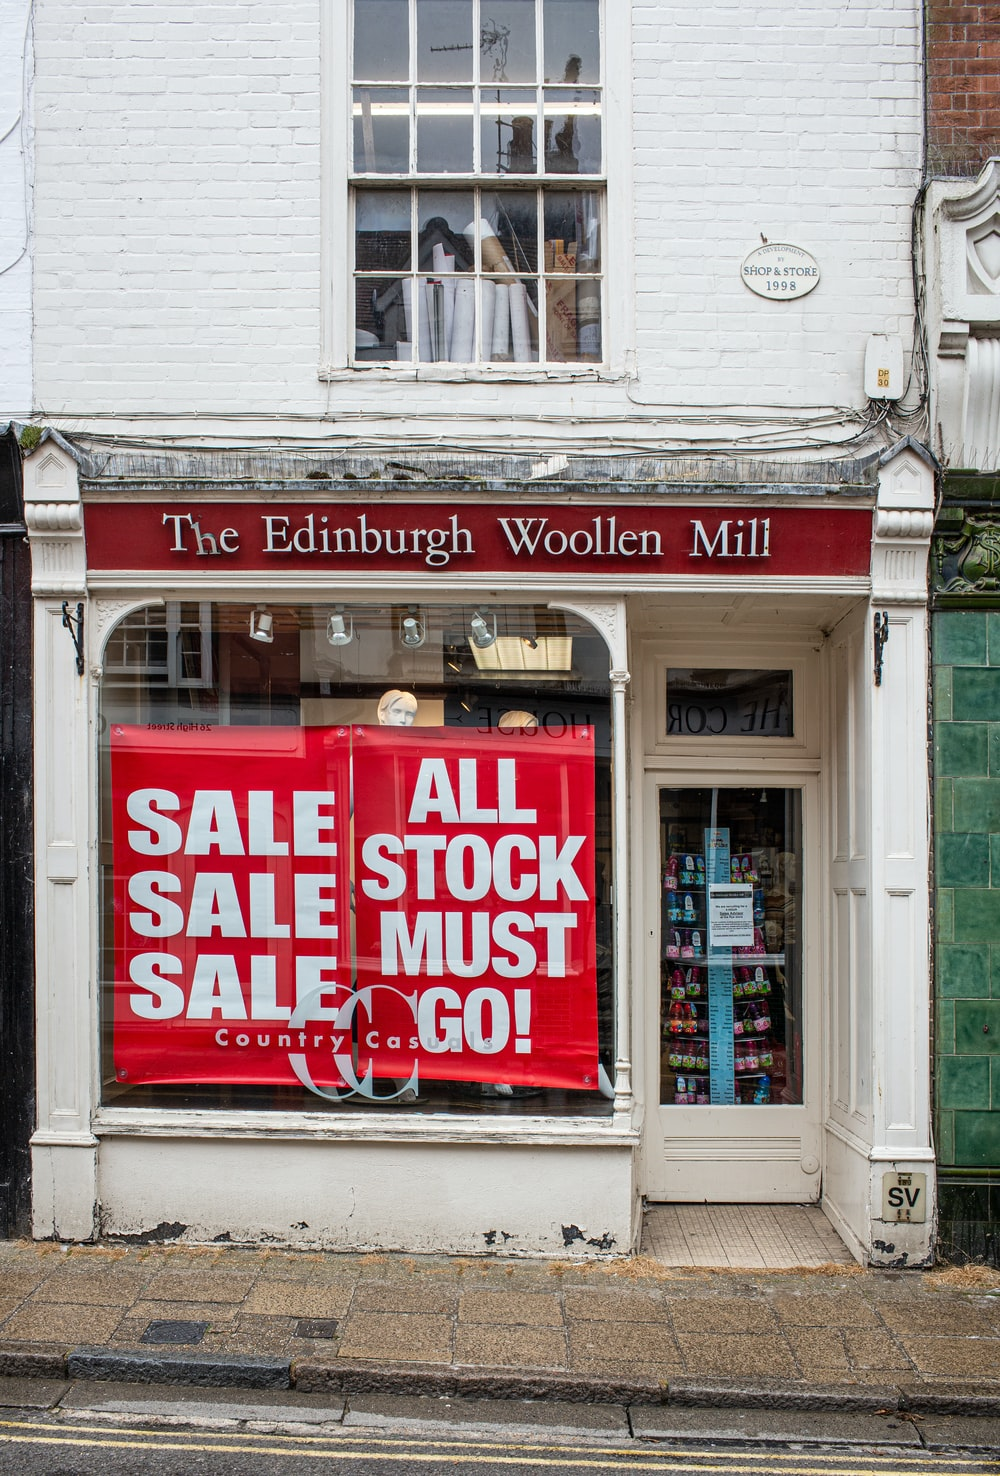 Sale Sale Sale and All Stock Must Go! signs on The Edinburgh Woollen Mill building windows during daytime